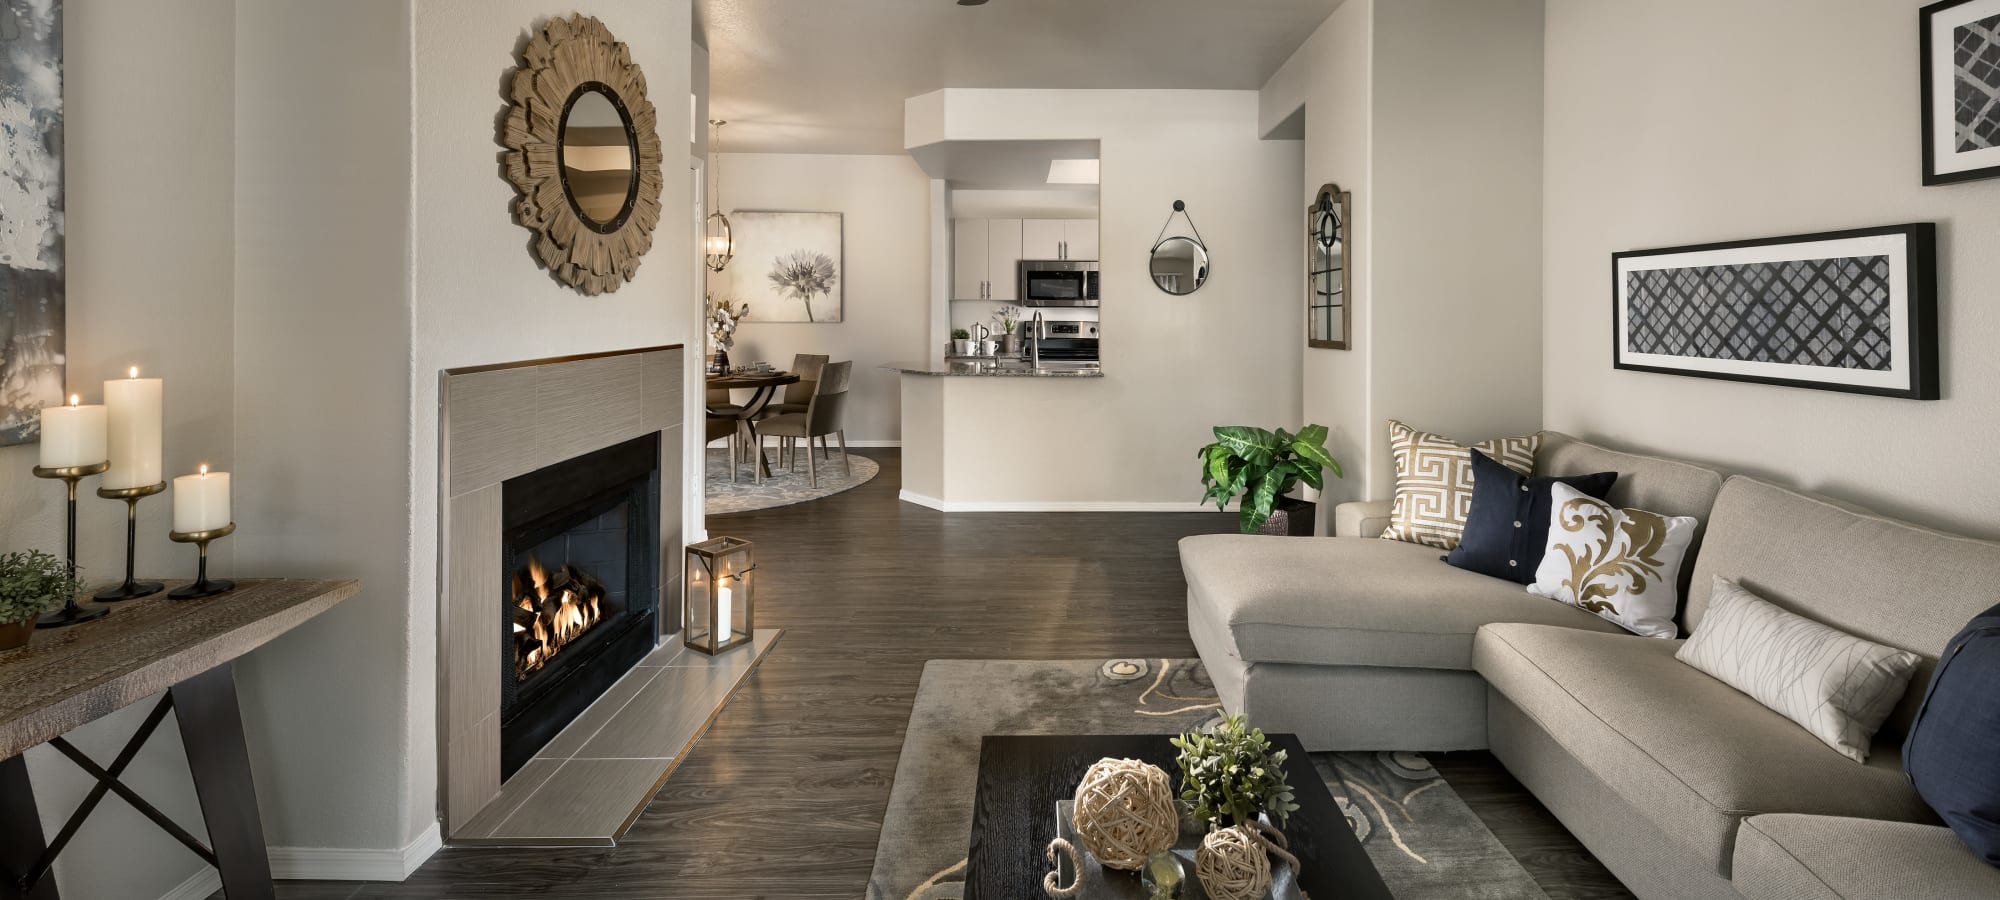 Spacious living room in model home at Bellagio in Scottsdale, Arizona